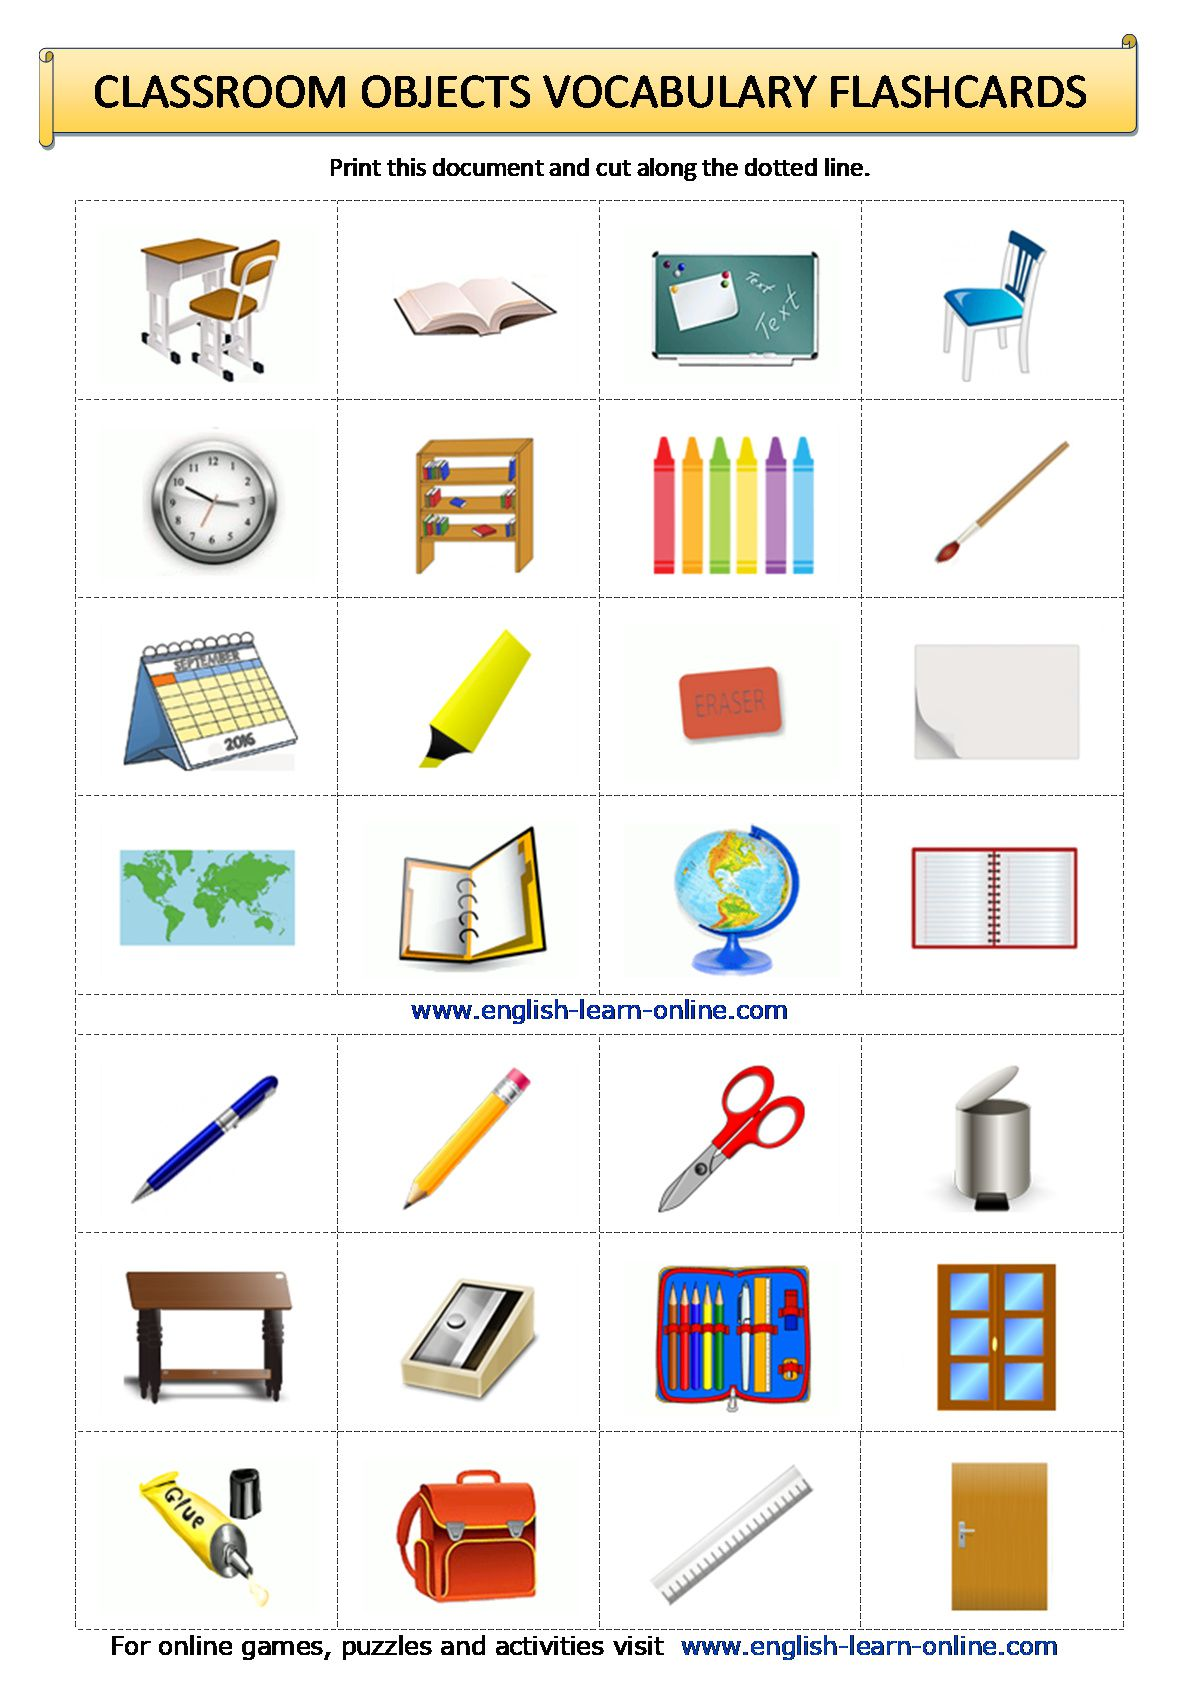 Truth Of The Talisman Classroom Objects In English Flashcards